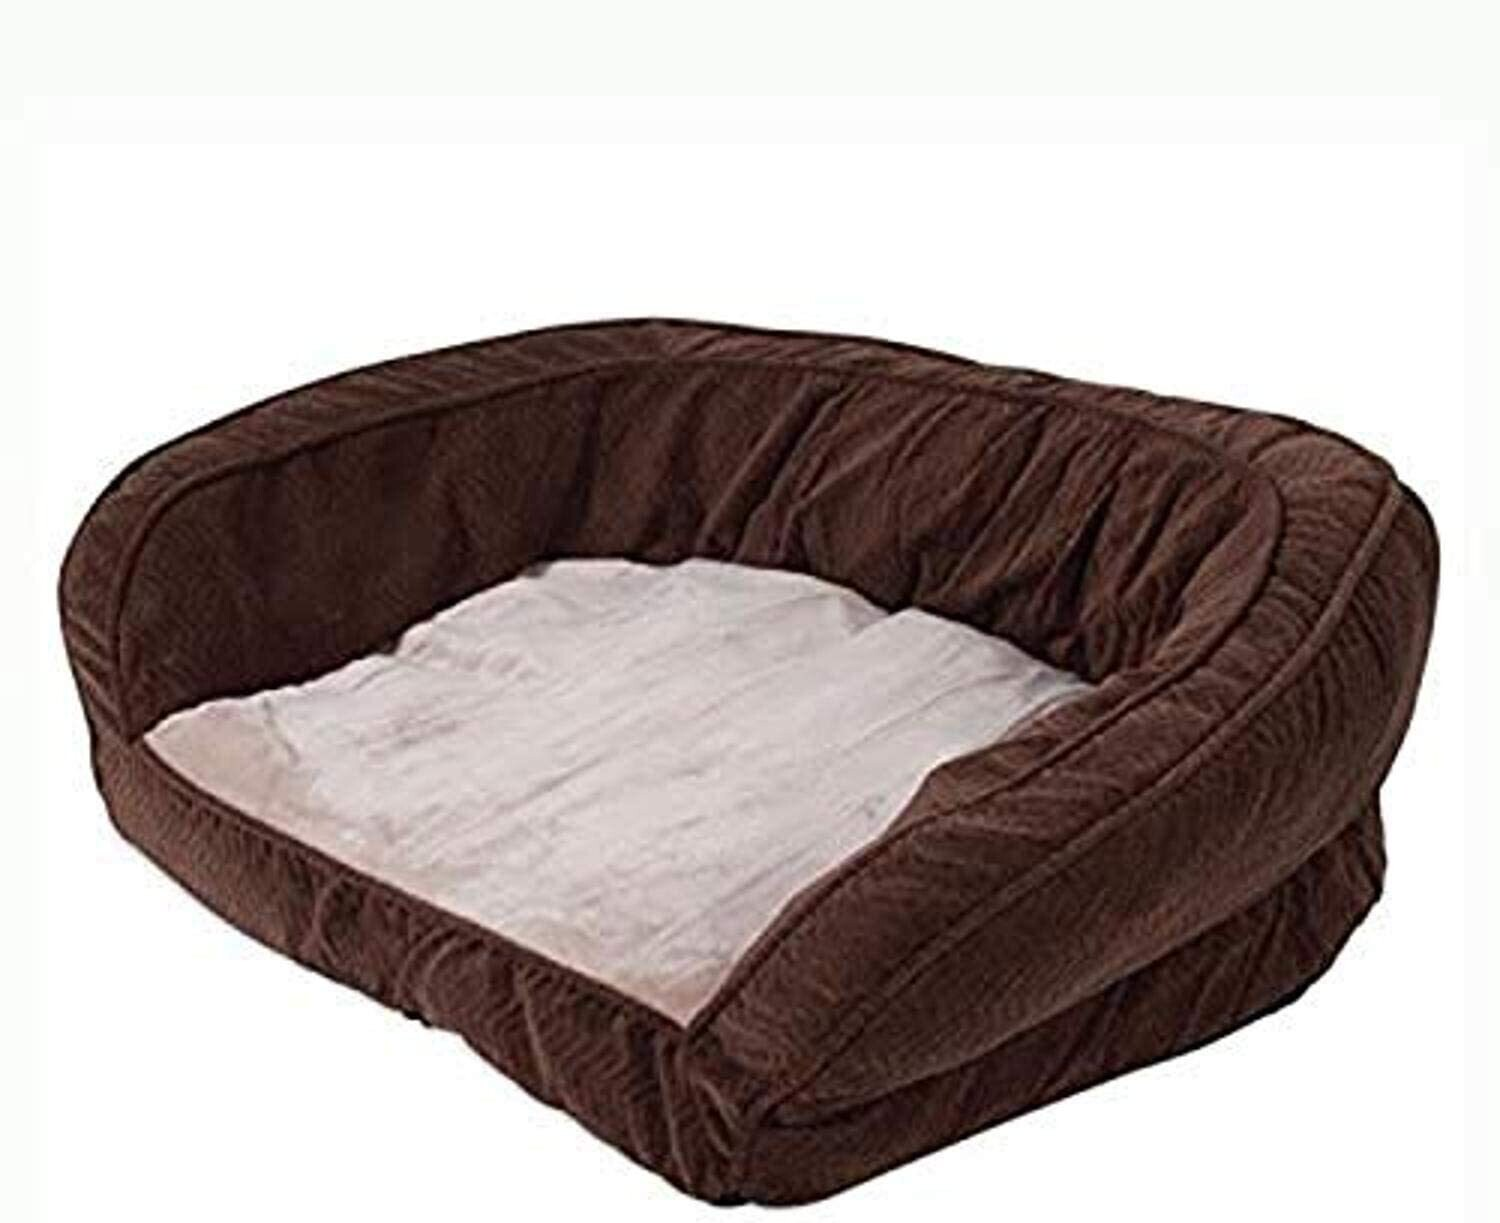 """PRECISION COUCH CHOCOLATE - 32"""" x 25"""" x 10.5"""""""